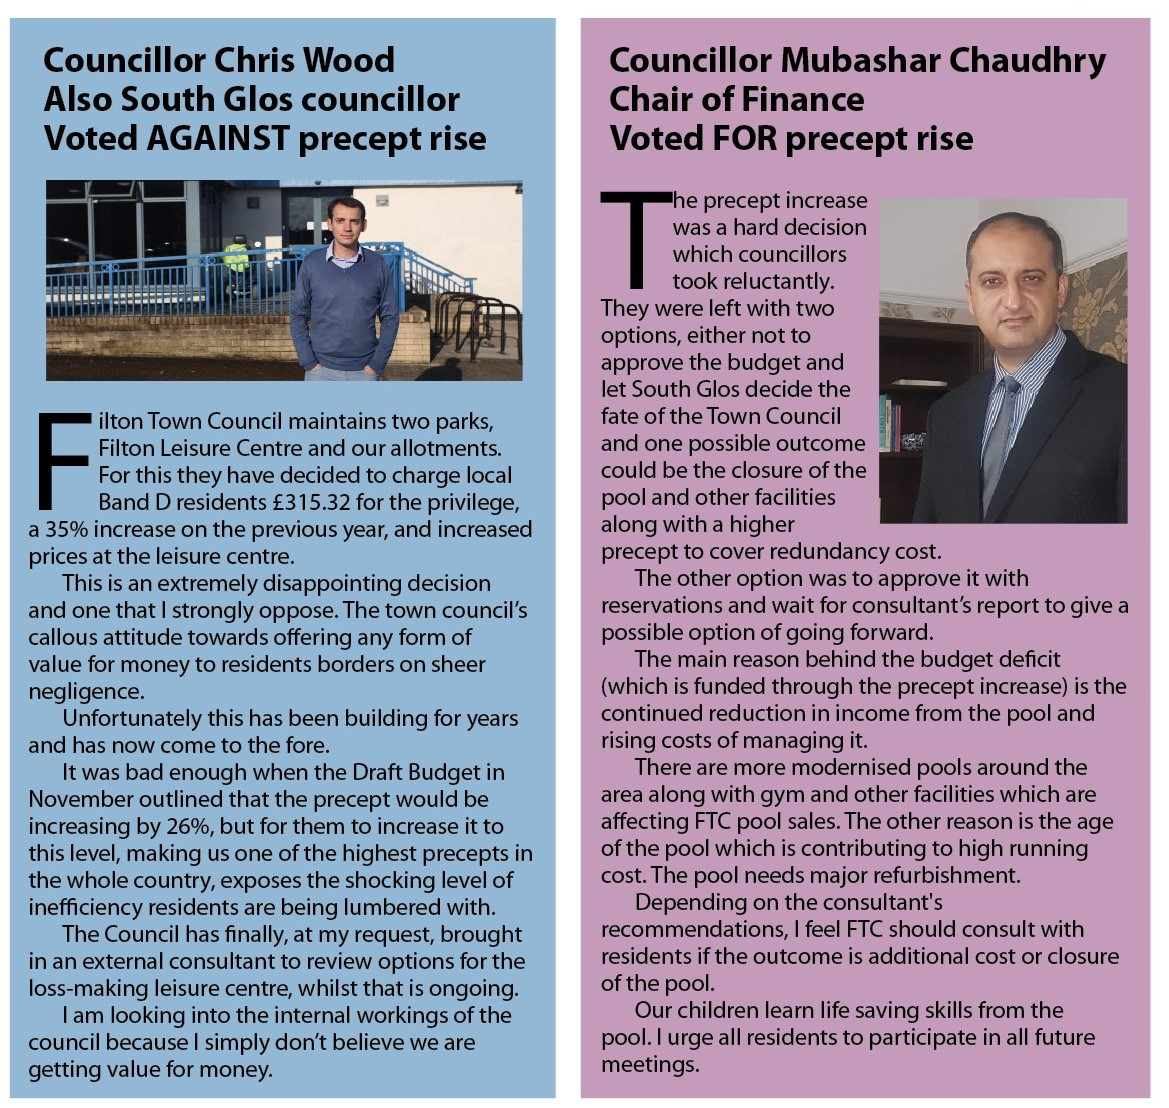 Opposing views - councillors explain their vote on precept